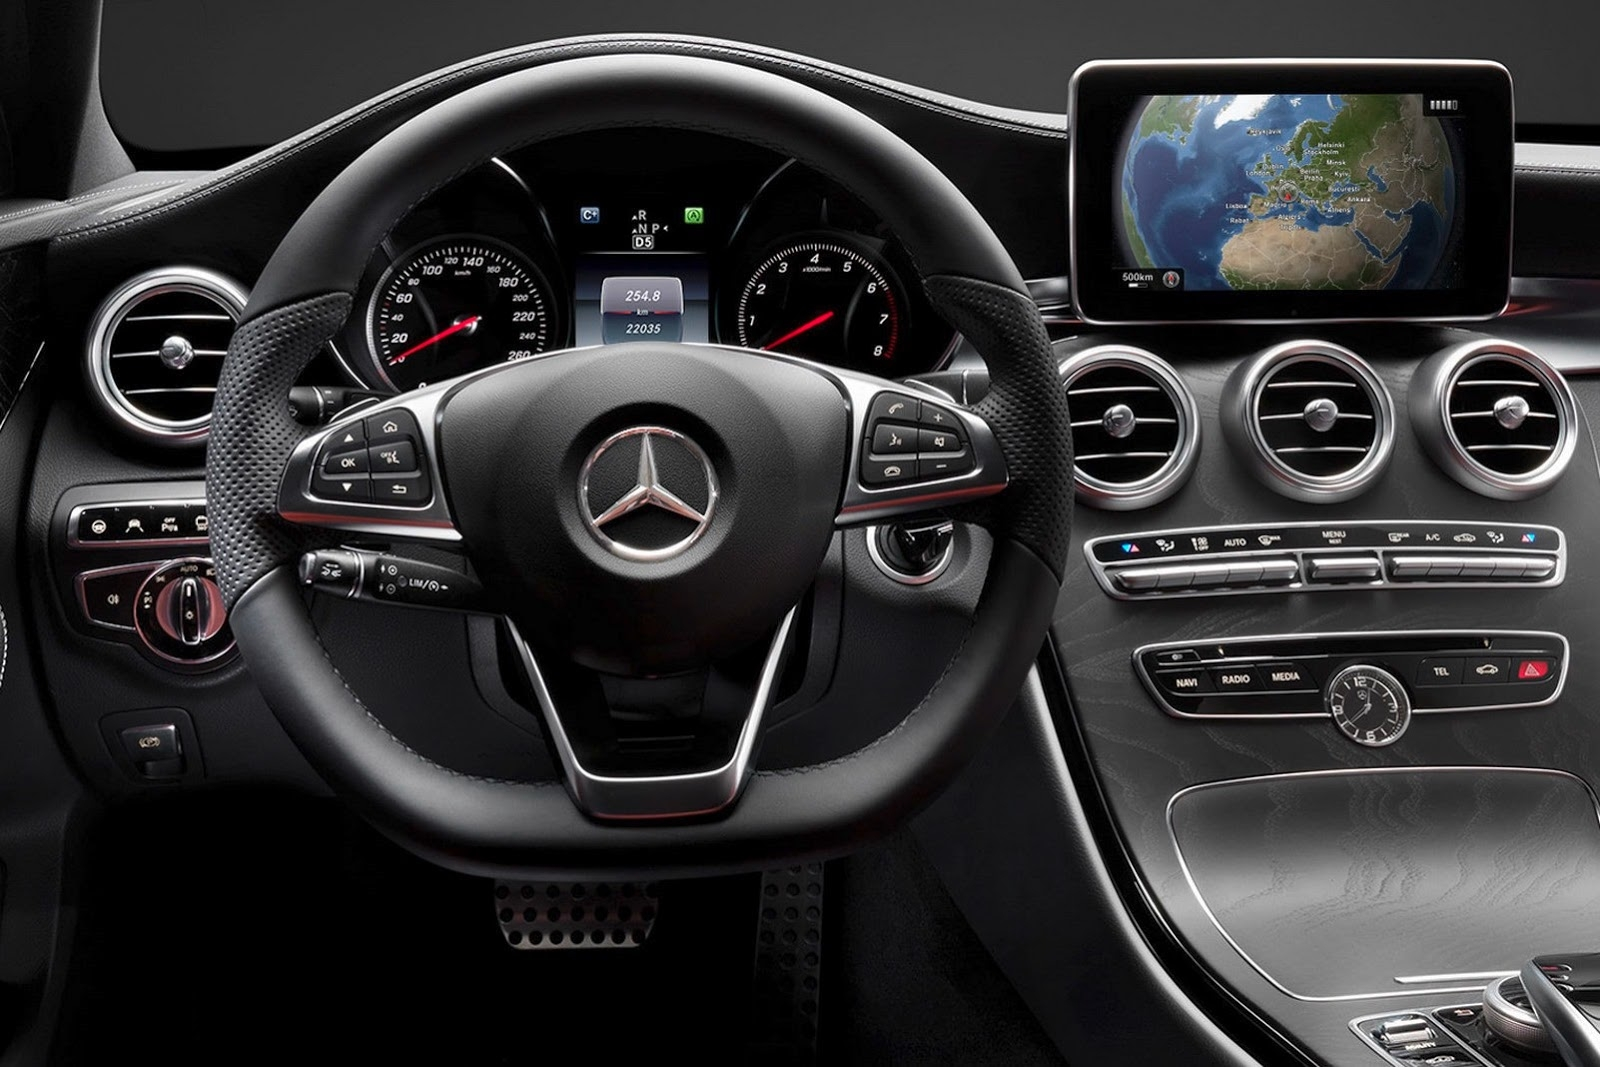 Mercedes Benz C Class 2018 Interior Dashboard